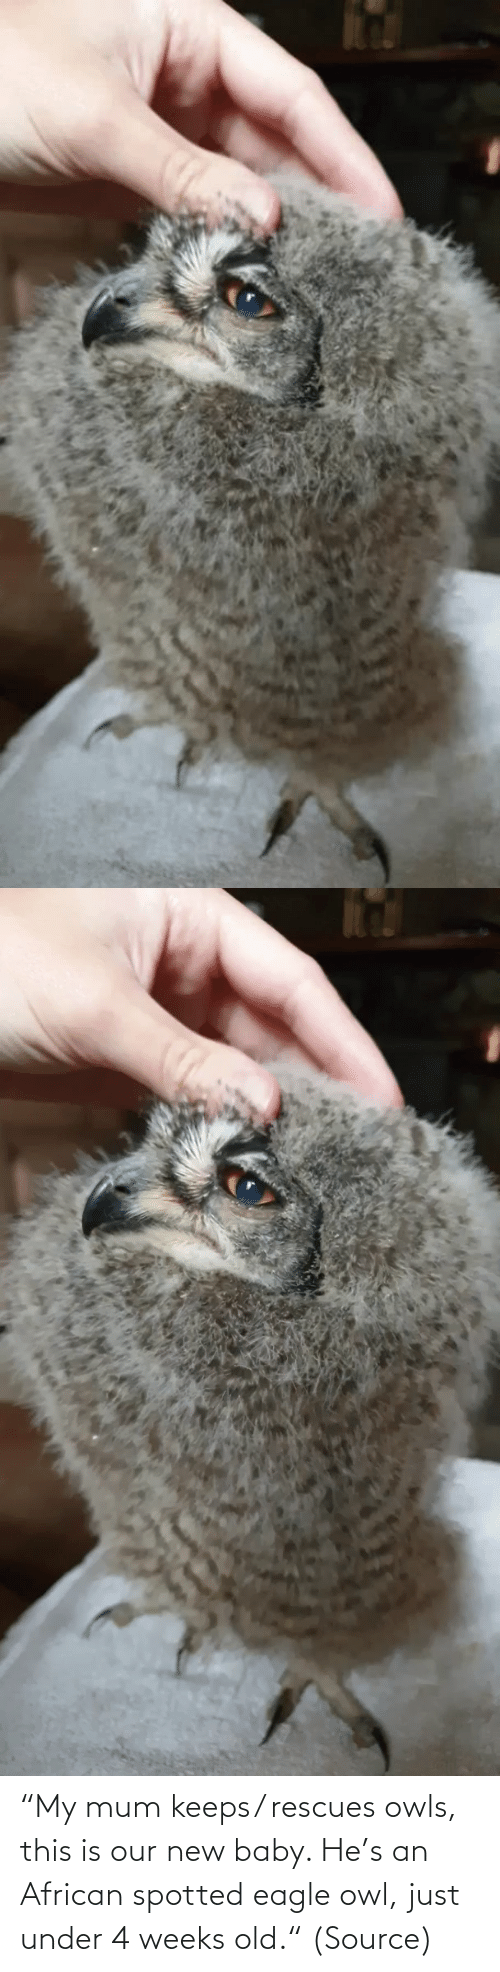 "www: ""My mum keeps/ rescues owls, this is our new baby. He's an African spotted eagle owl, just under 4 weeks old."" (Source)"